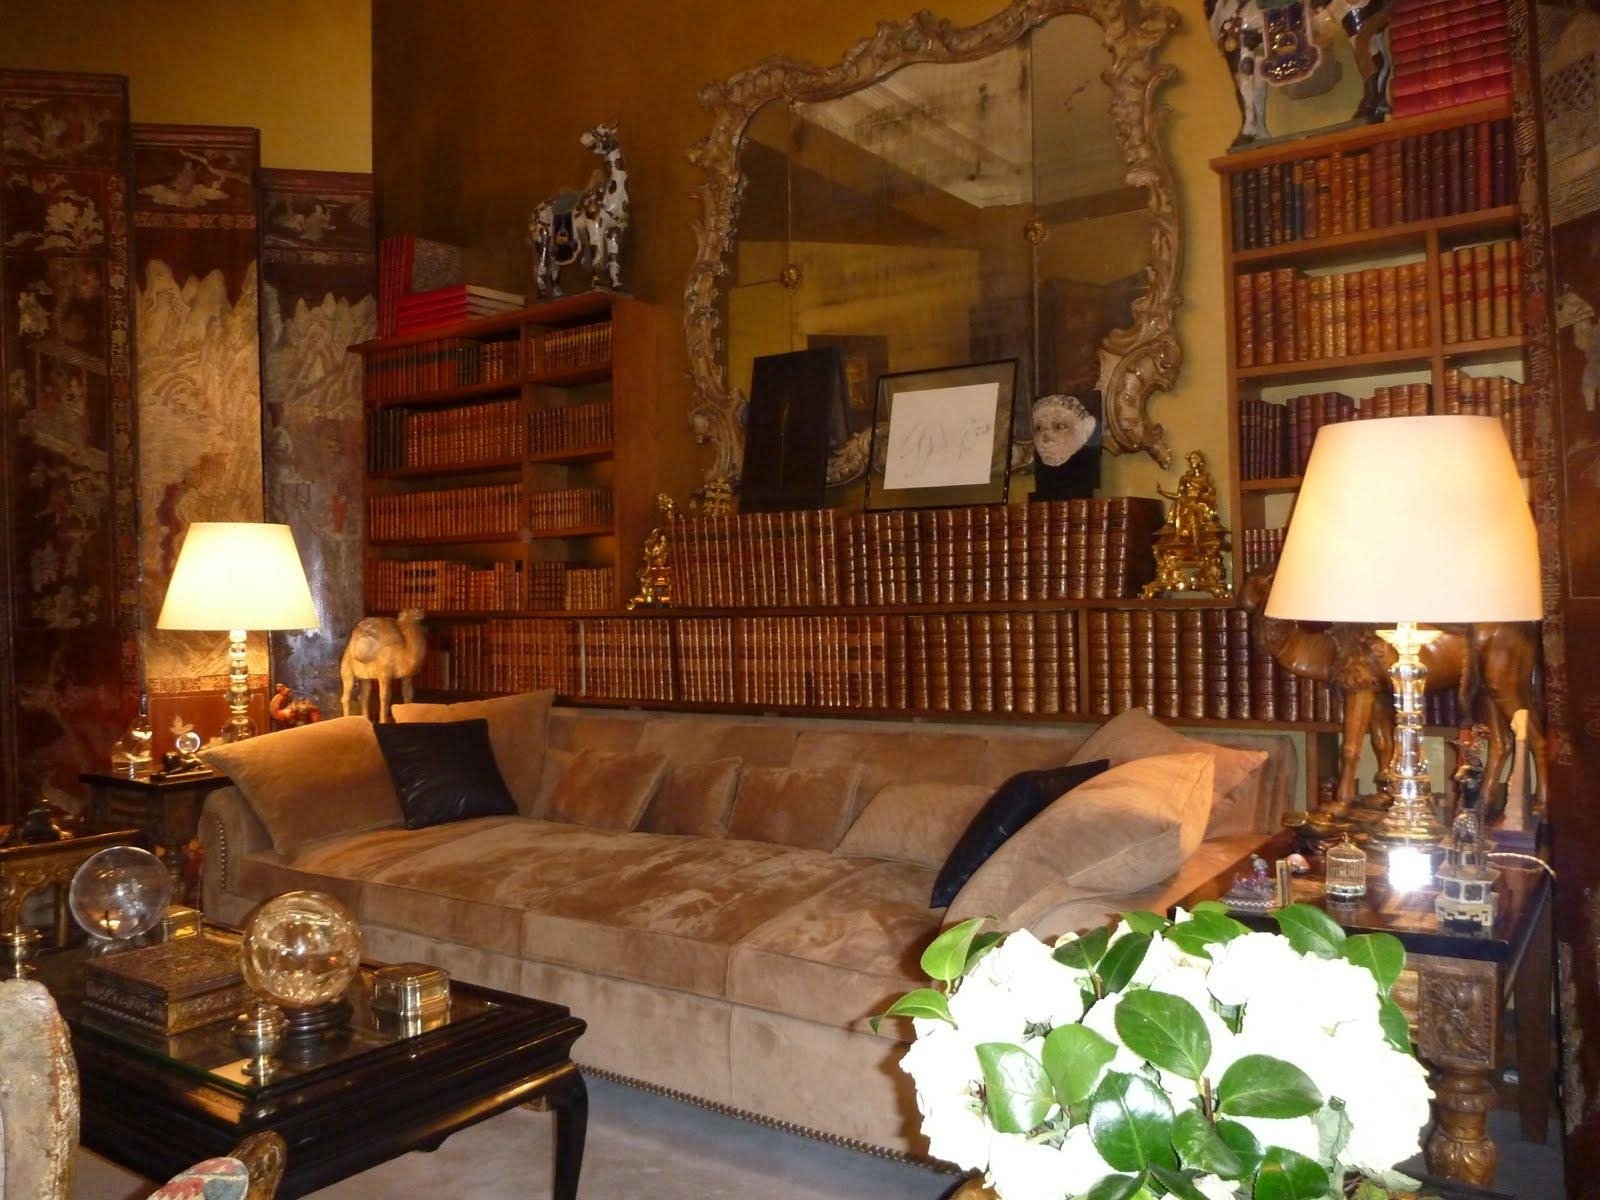 Coco Chanel Sofa With Design Ideas 22123 | Kengire Intended For Coco Chanel Sofas (Image 8 of 20)